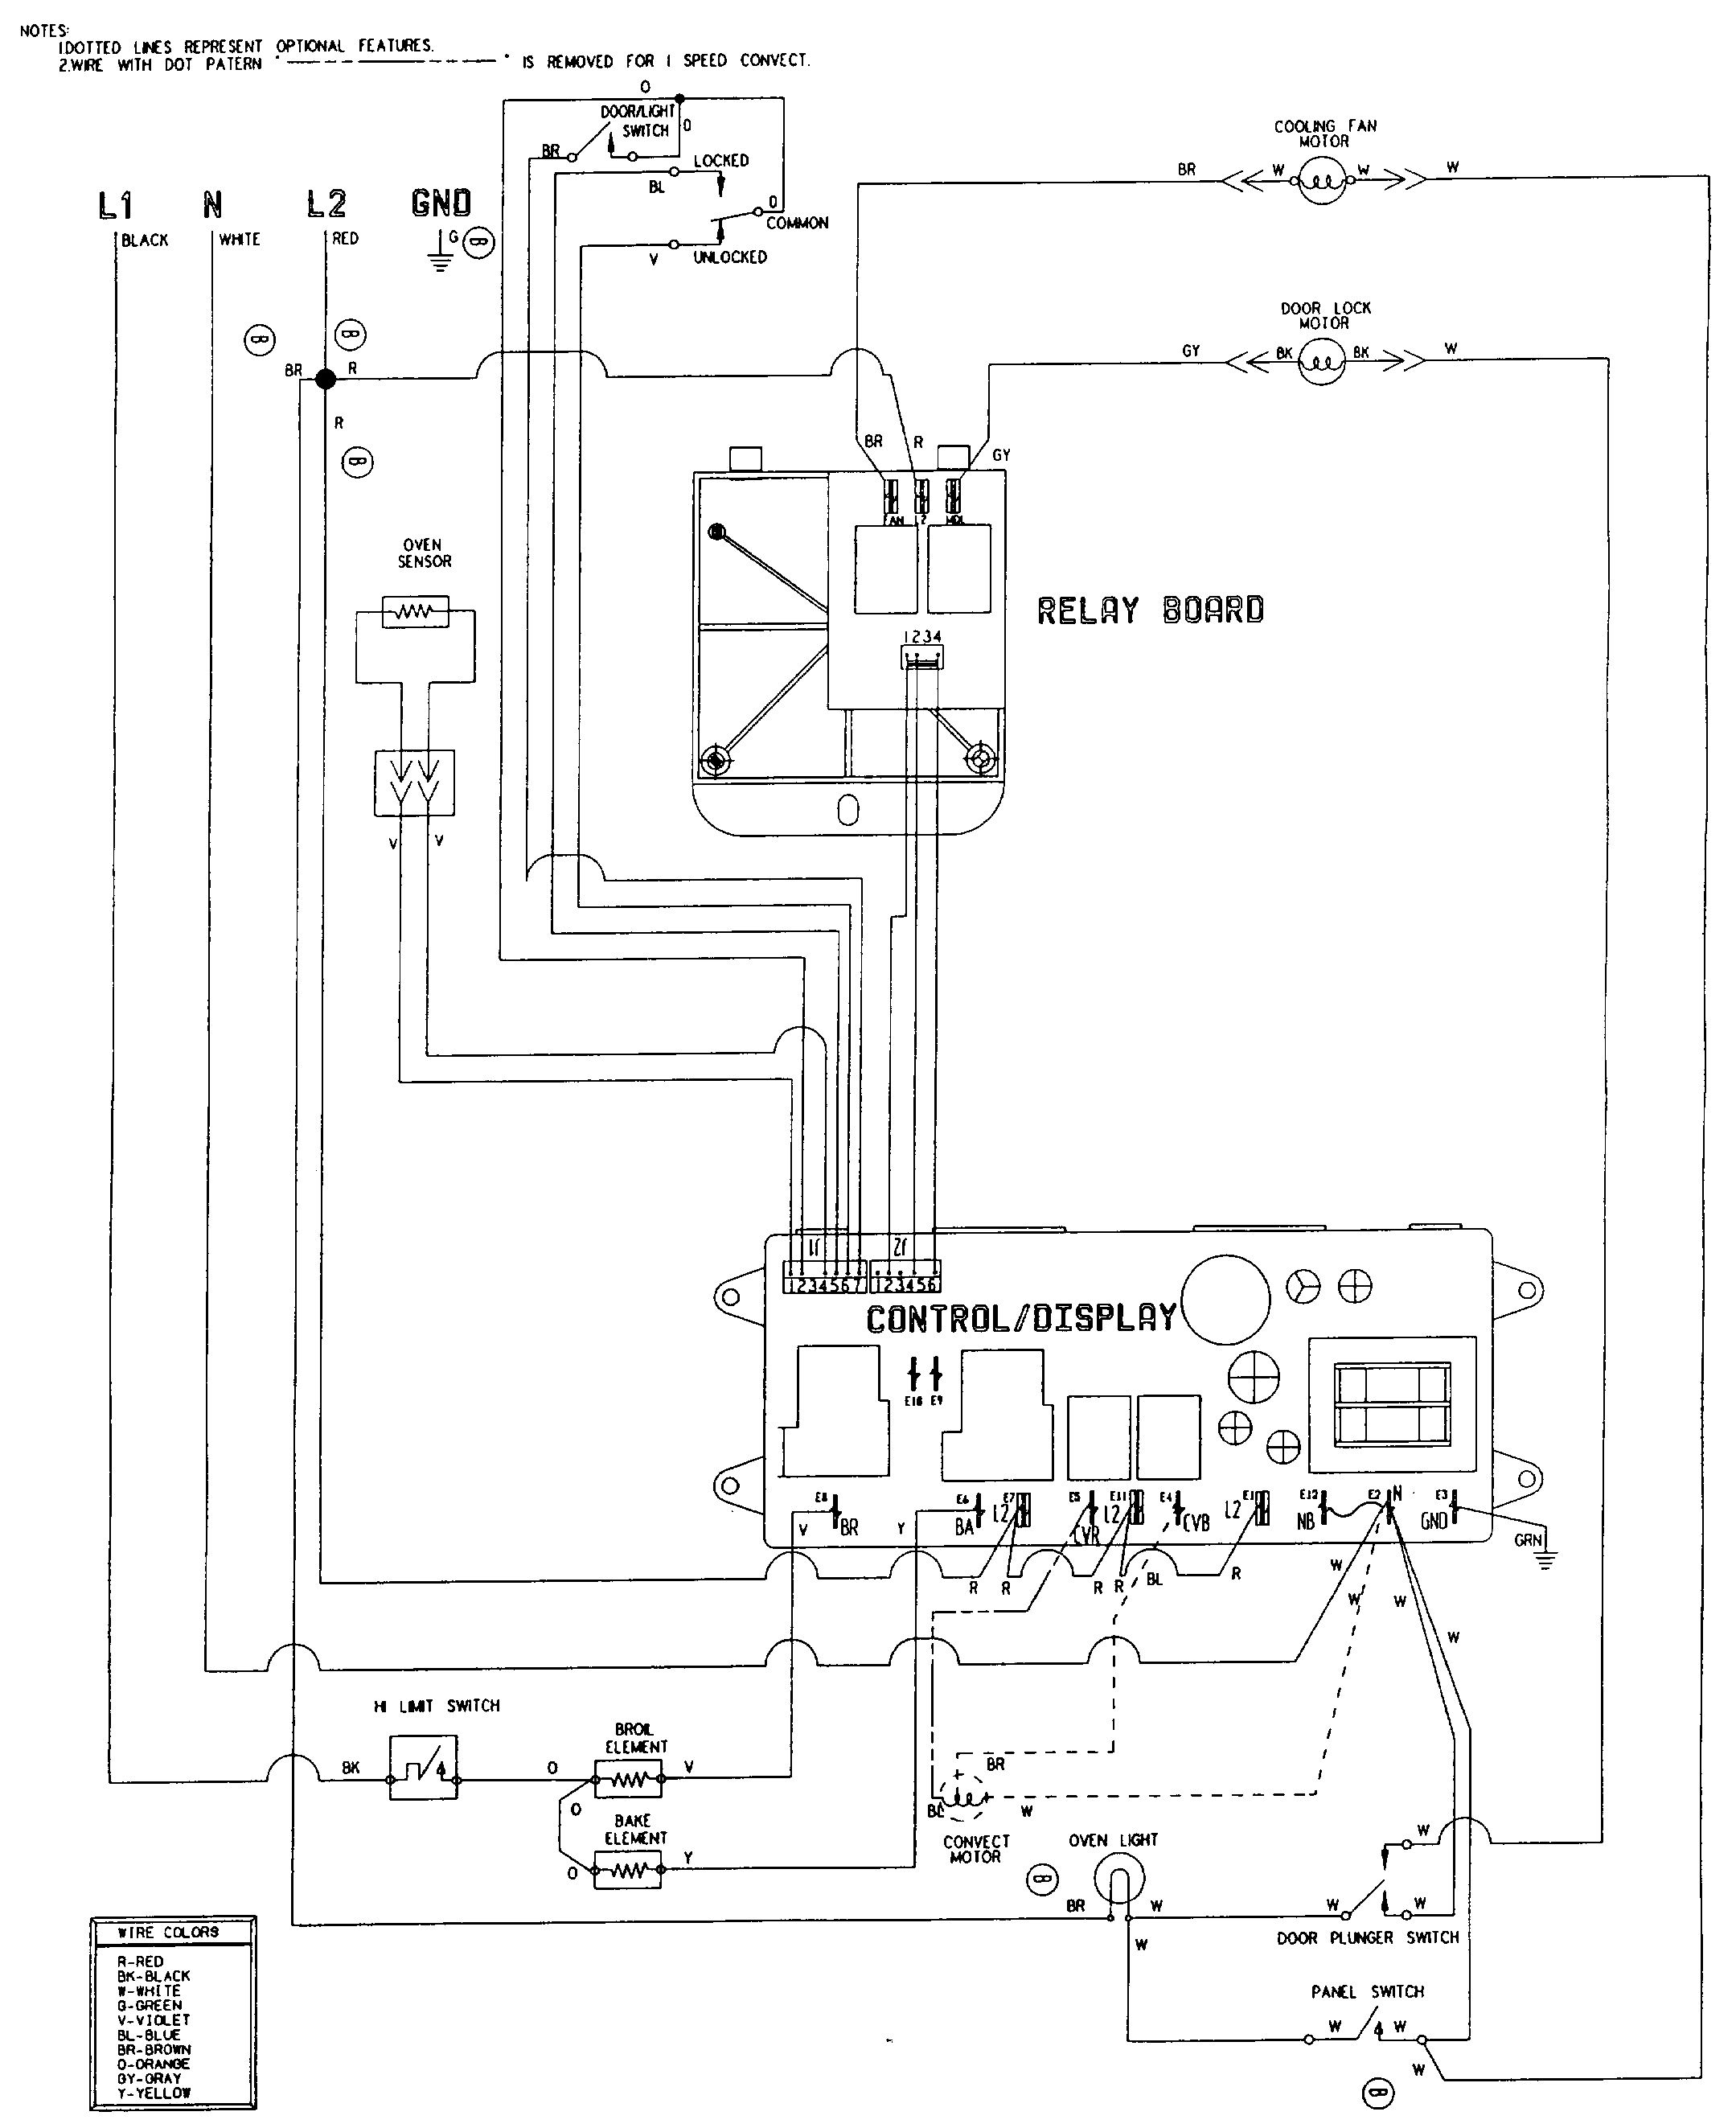 Defy Gemini Oven Wiring Diagram Page 4 And Schematics Magic Chef Stove Gourmet Double Solutions